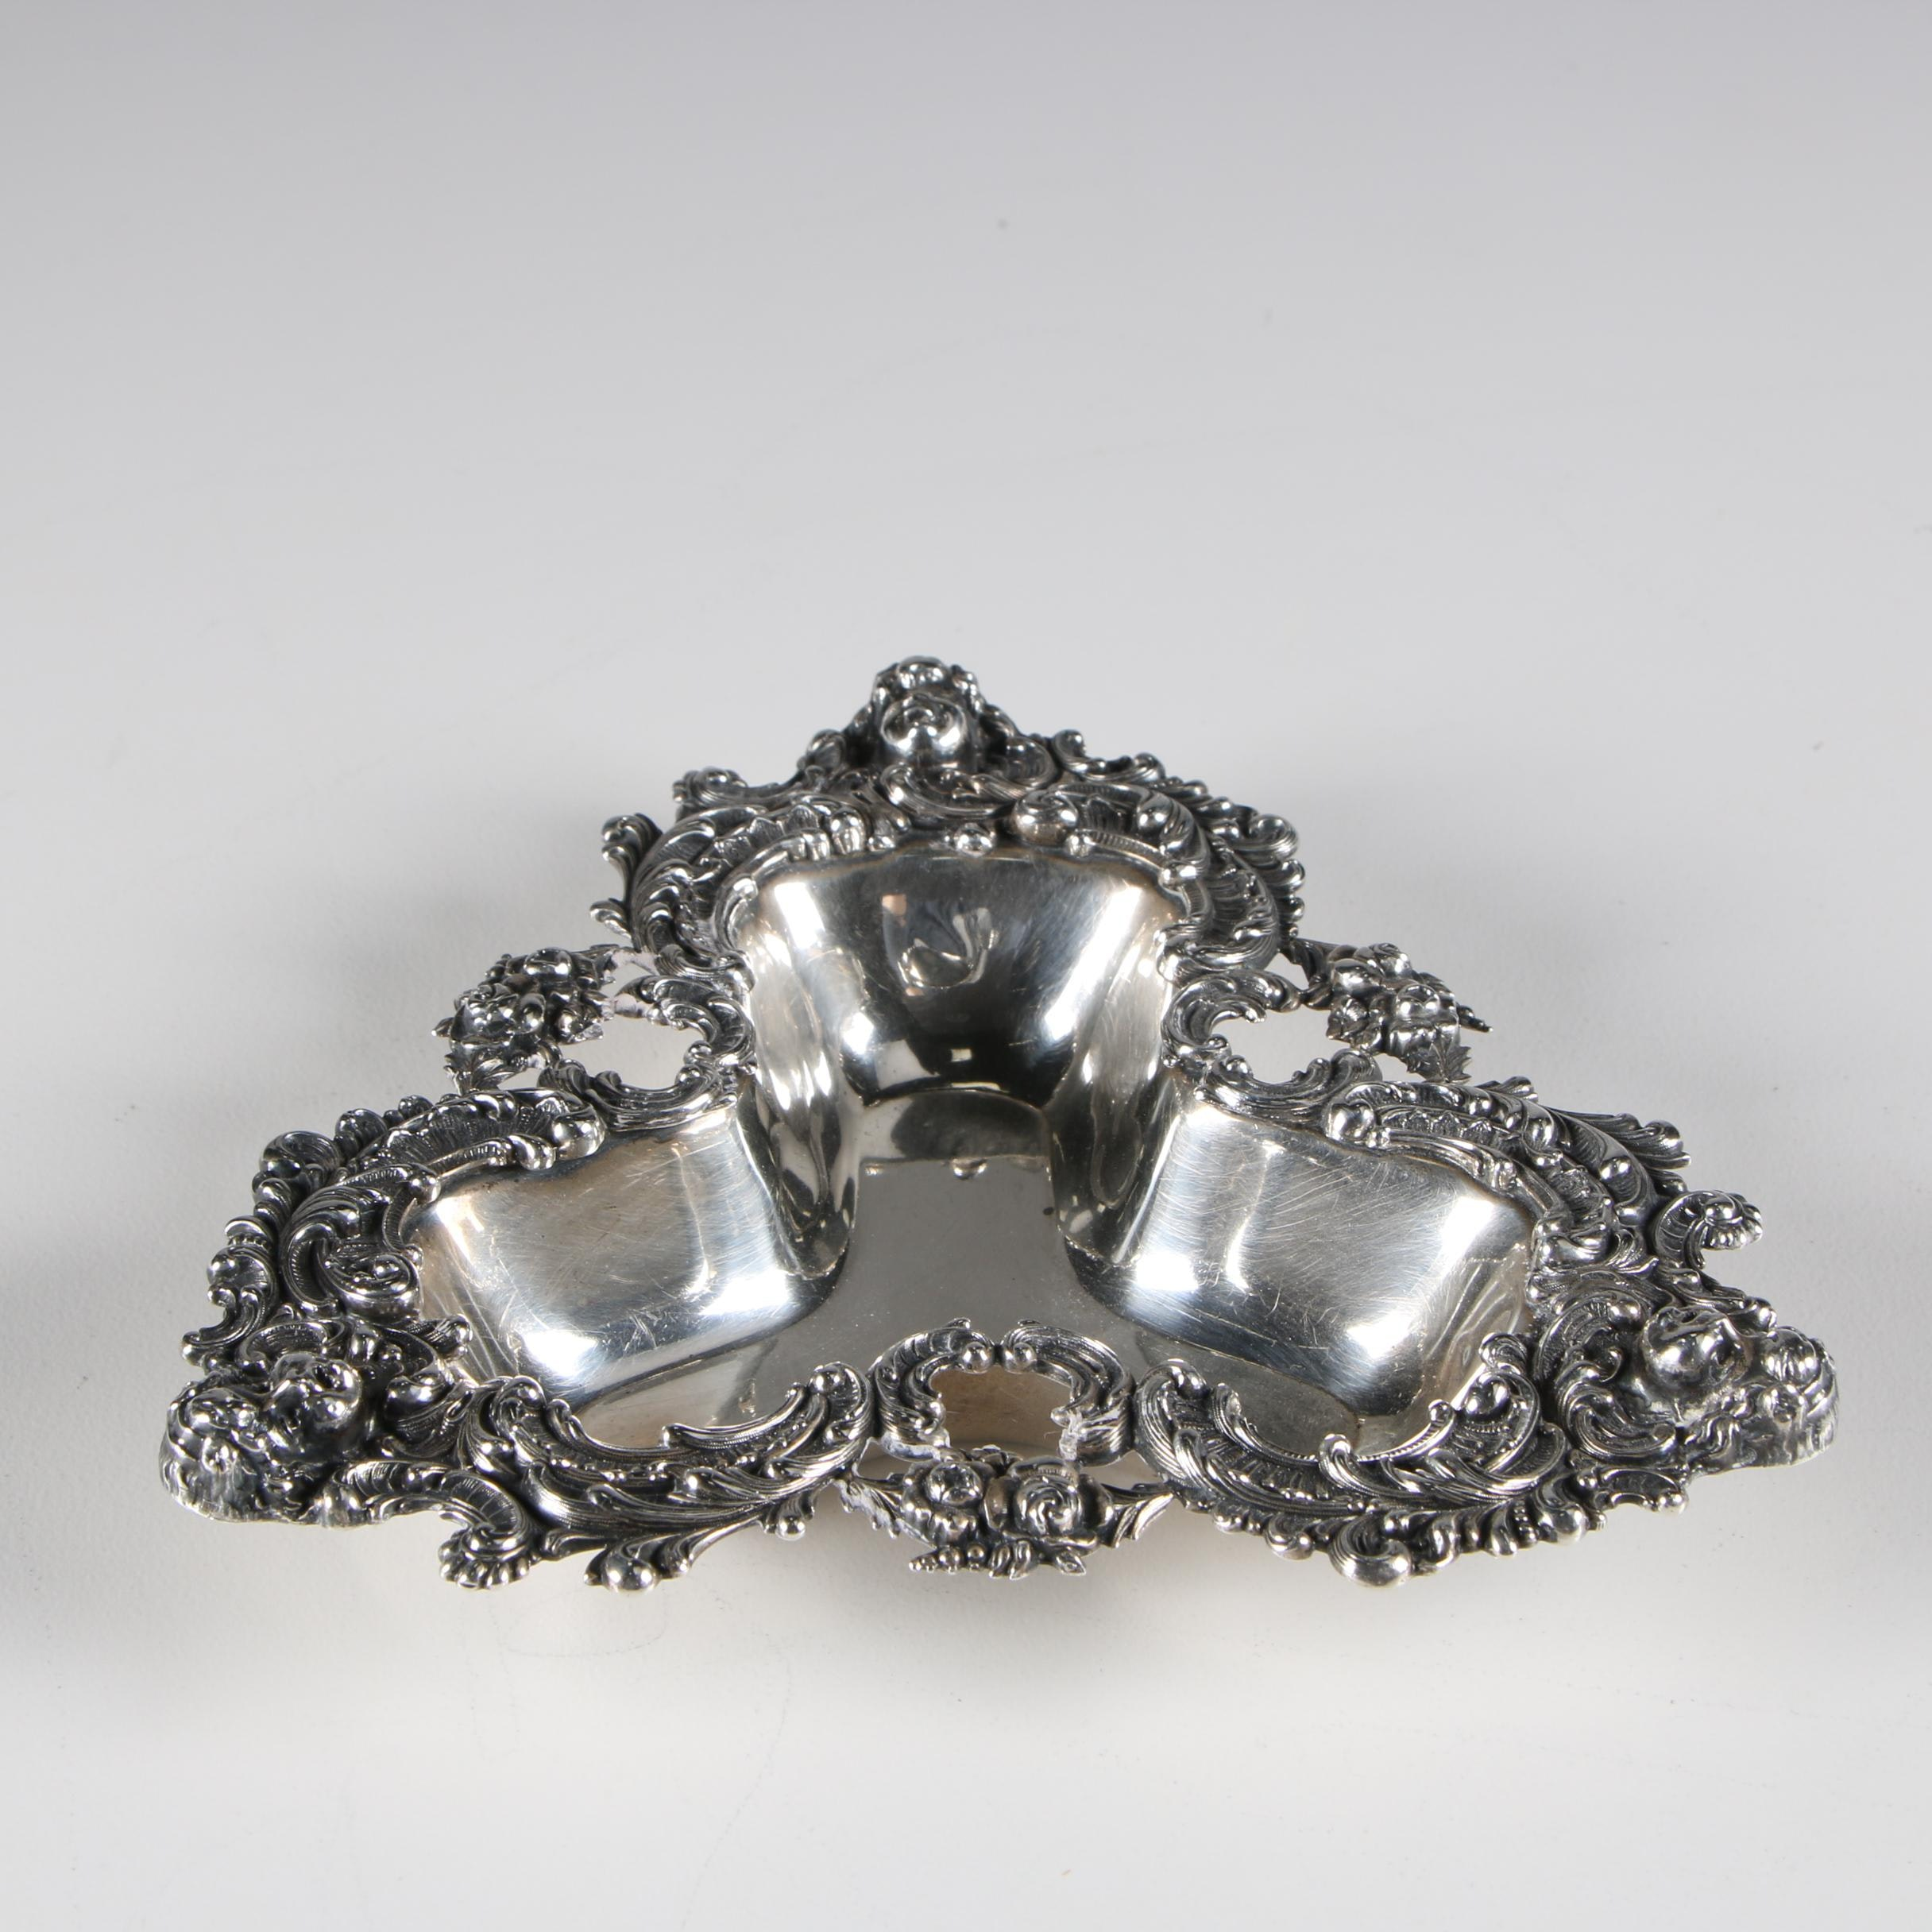 Wm B. Kerr & Co. Art Nouveau Sterling Trefoil Bon Bon Bowl, c.1920s